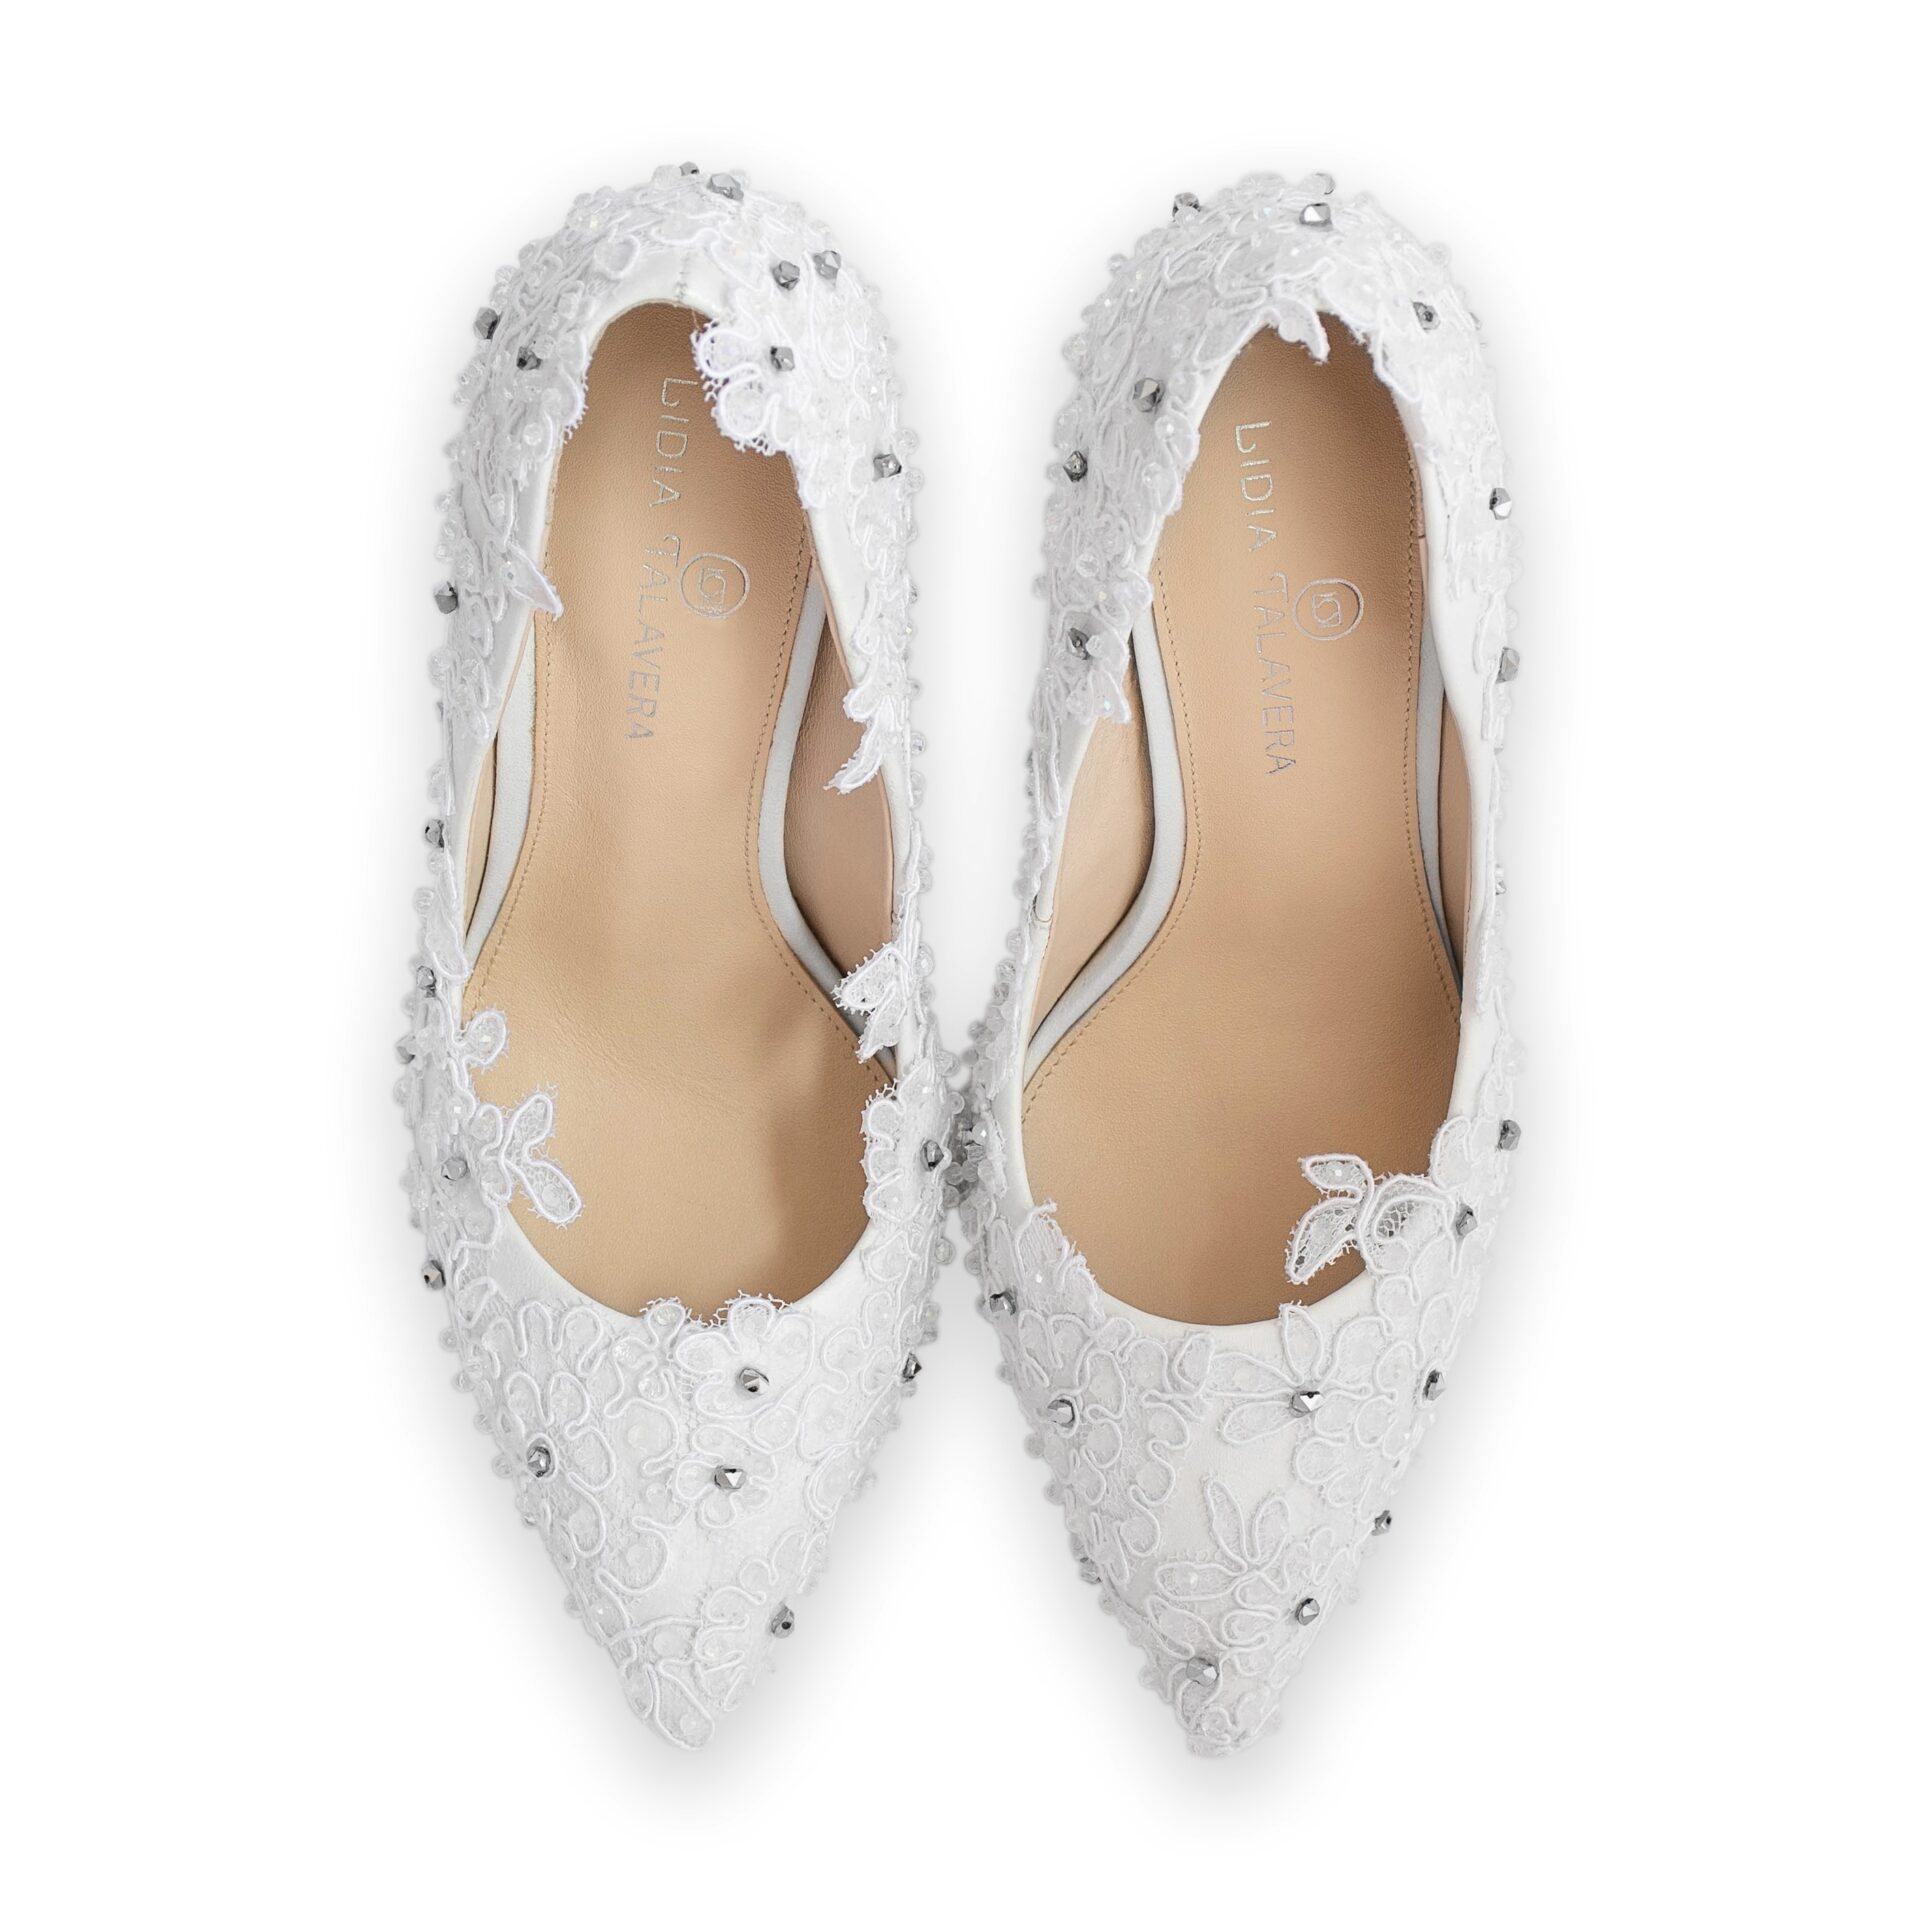 wedding pointed toe bridal pump with lace & crystals